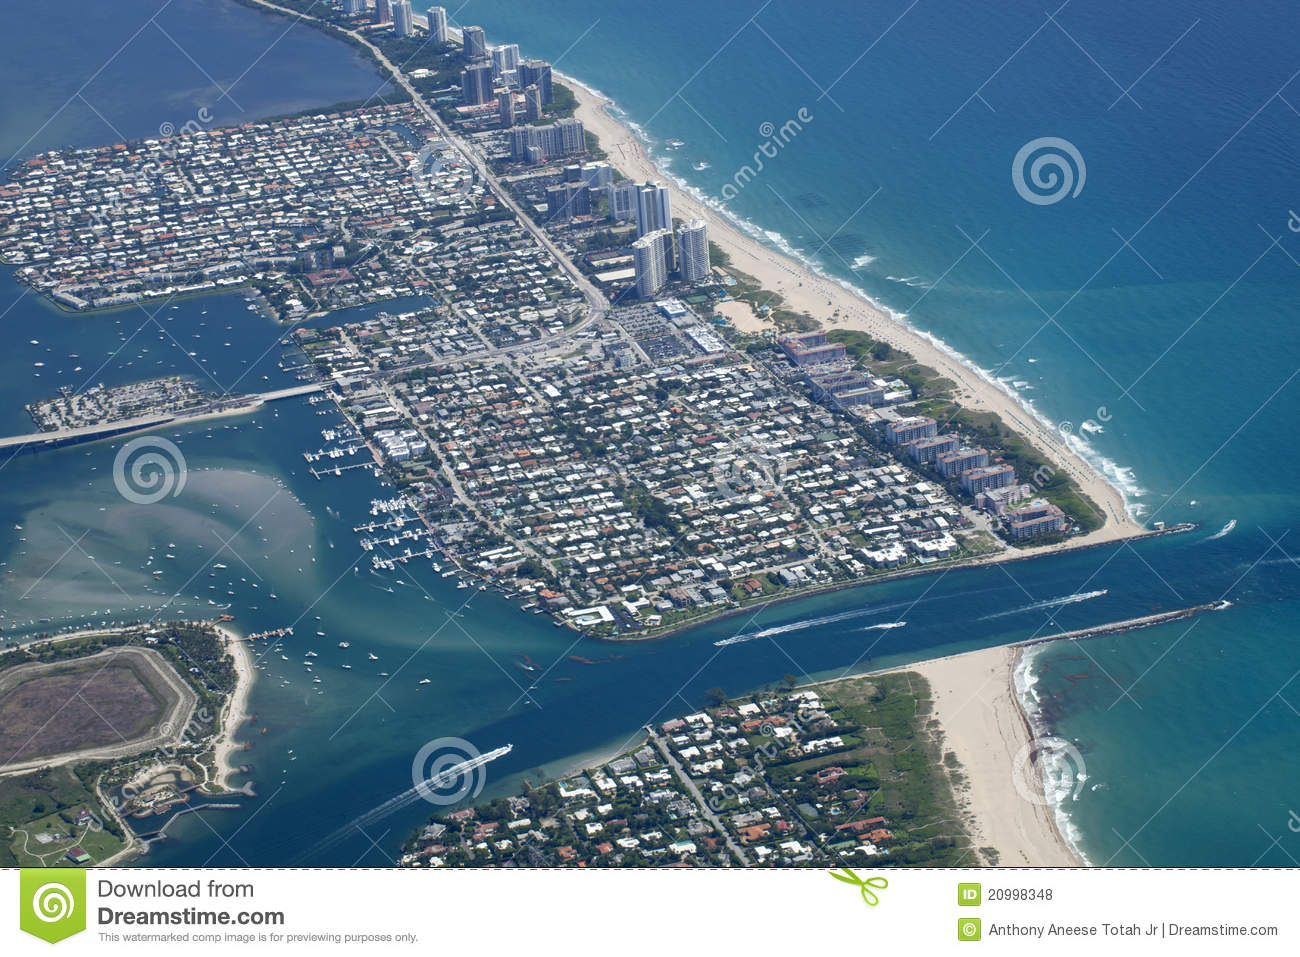 singer island florida map with Royalty Free Stock Photos Lake Worth Inlet Palm Beach County Florida Image20998348 on Hot In Cold Hot Wallpapers Of Kate further Img Ba central Bank Newport Mn besides Torch Lake Mi weebly in addition Marriott Ocean Pointe together with Royalty Free Stock Photos Lake Worth Inlet Palm Beach County Florida Image20998348.